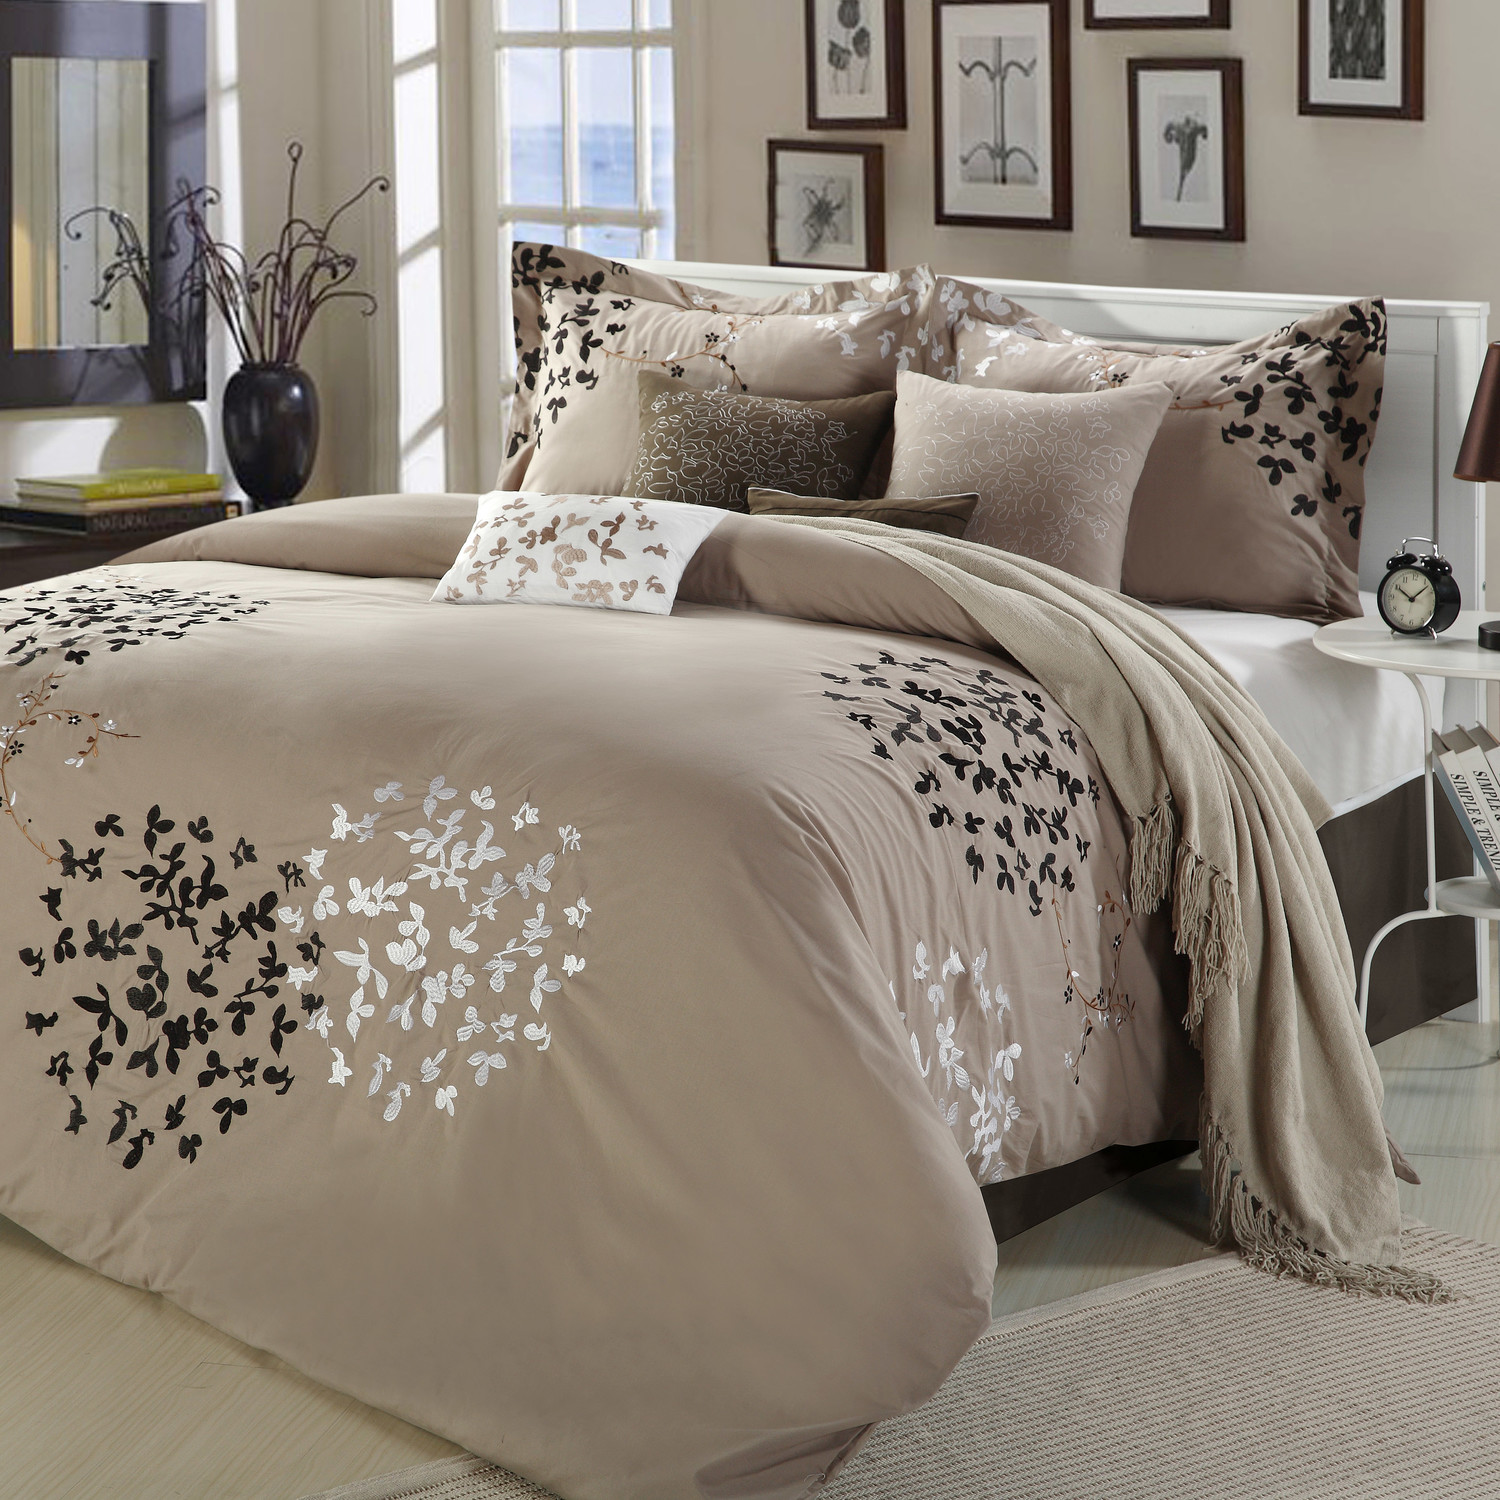 Brilliant comforters sets for bedroom design with queen comforter sets